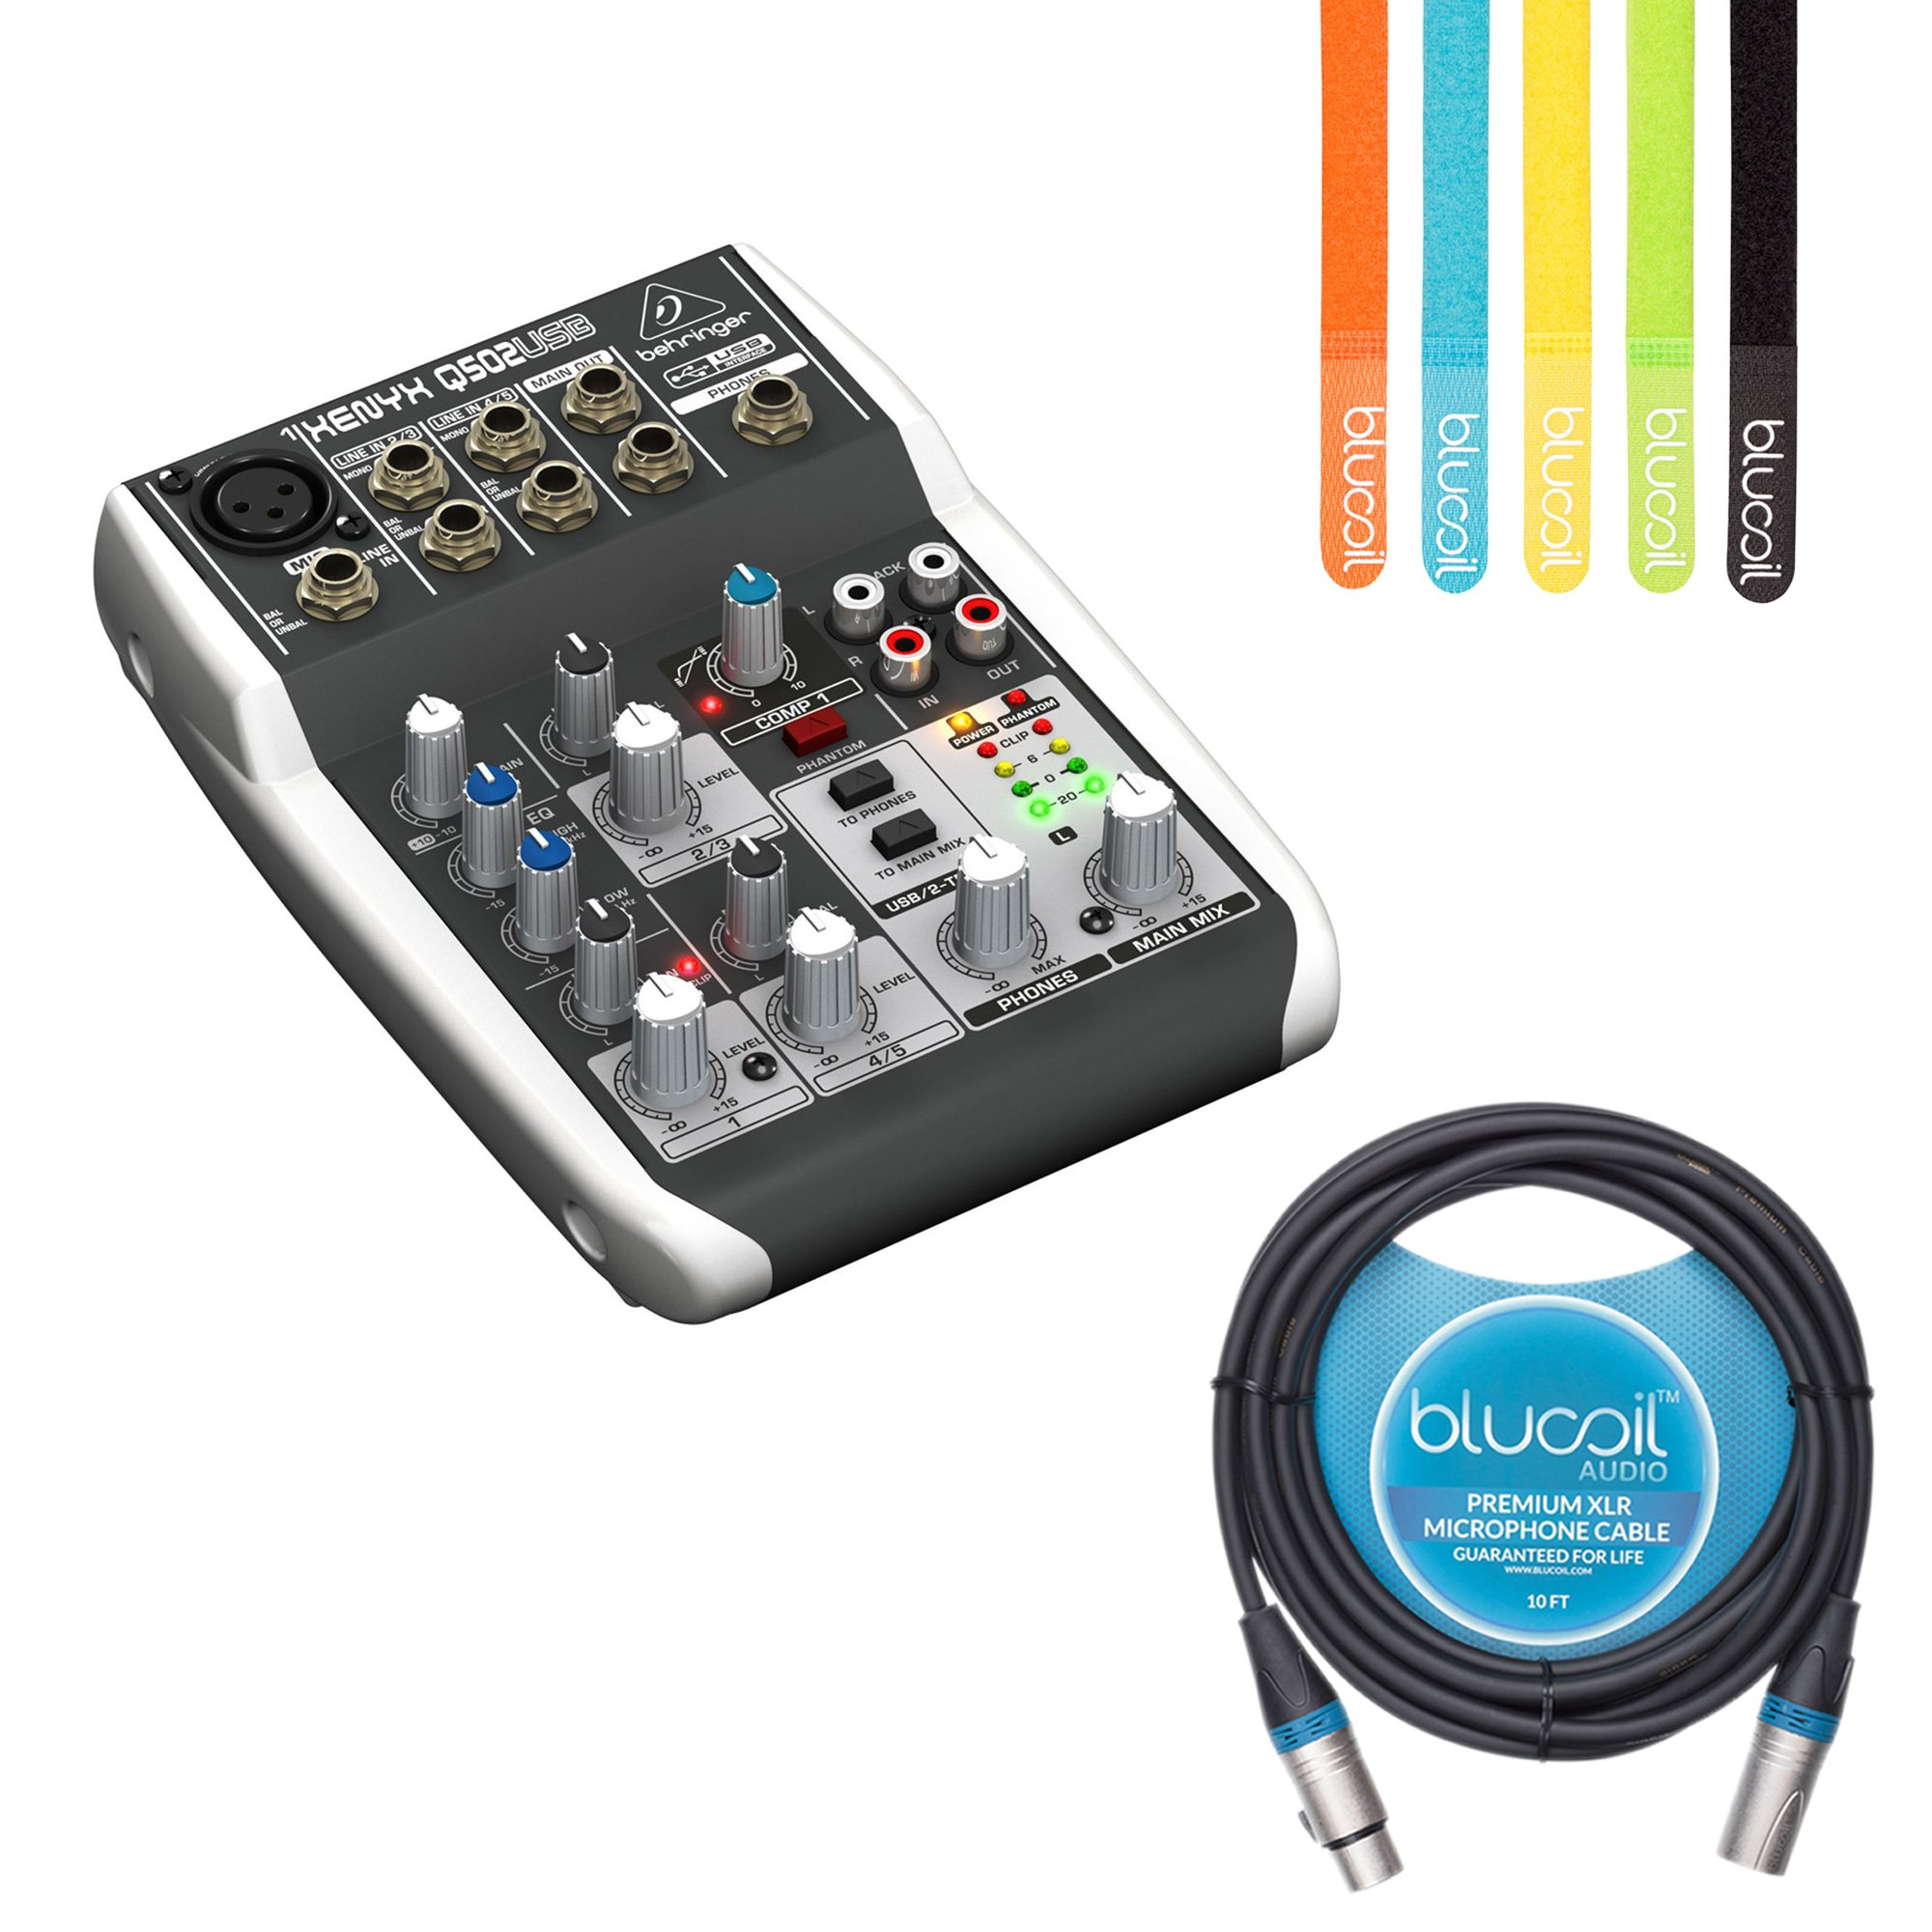 Behringer XENYX Q502USB Analog Mixer with Built-In USB Audio Interface -INCLUDES- Blucoil Premium 10-Ft XLR Cable AND 5-Pack of Cable Ties by blucoil